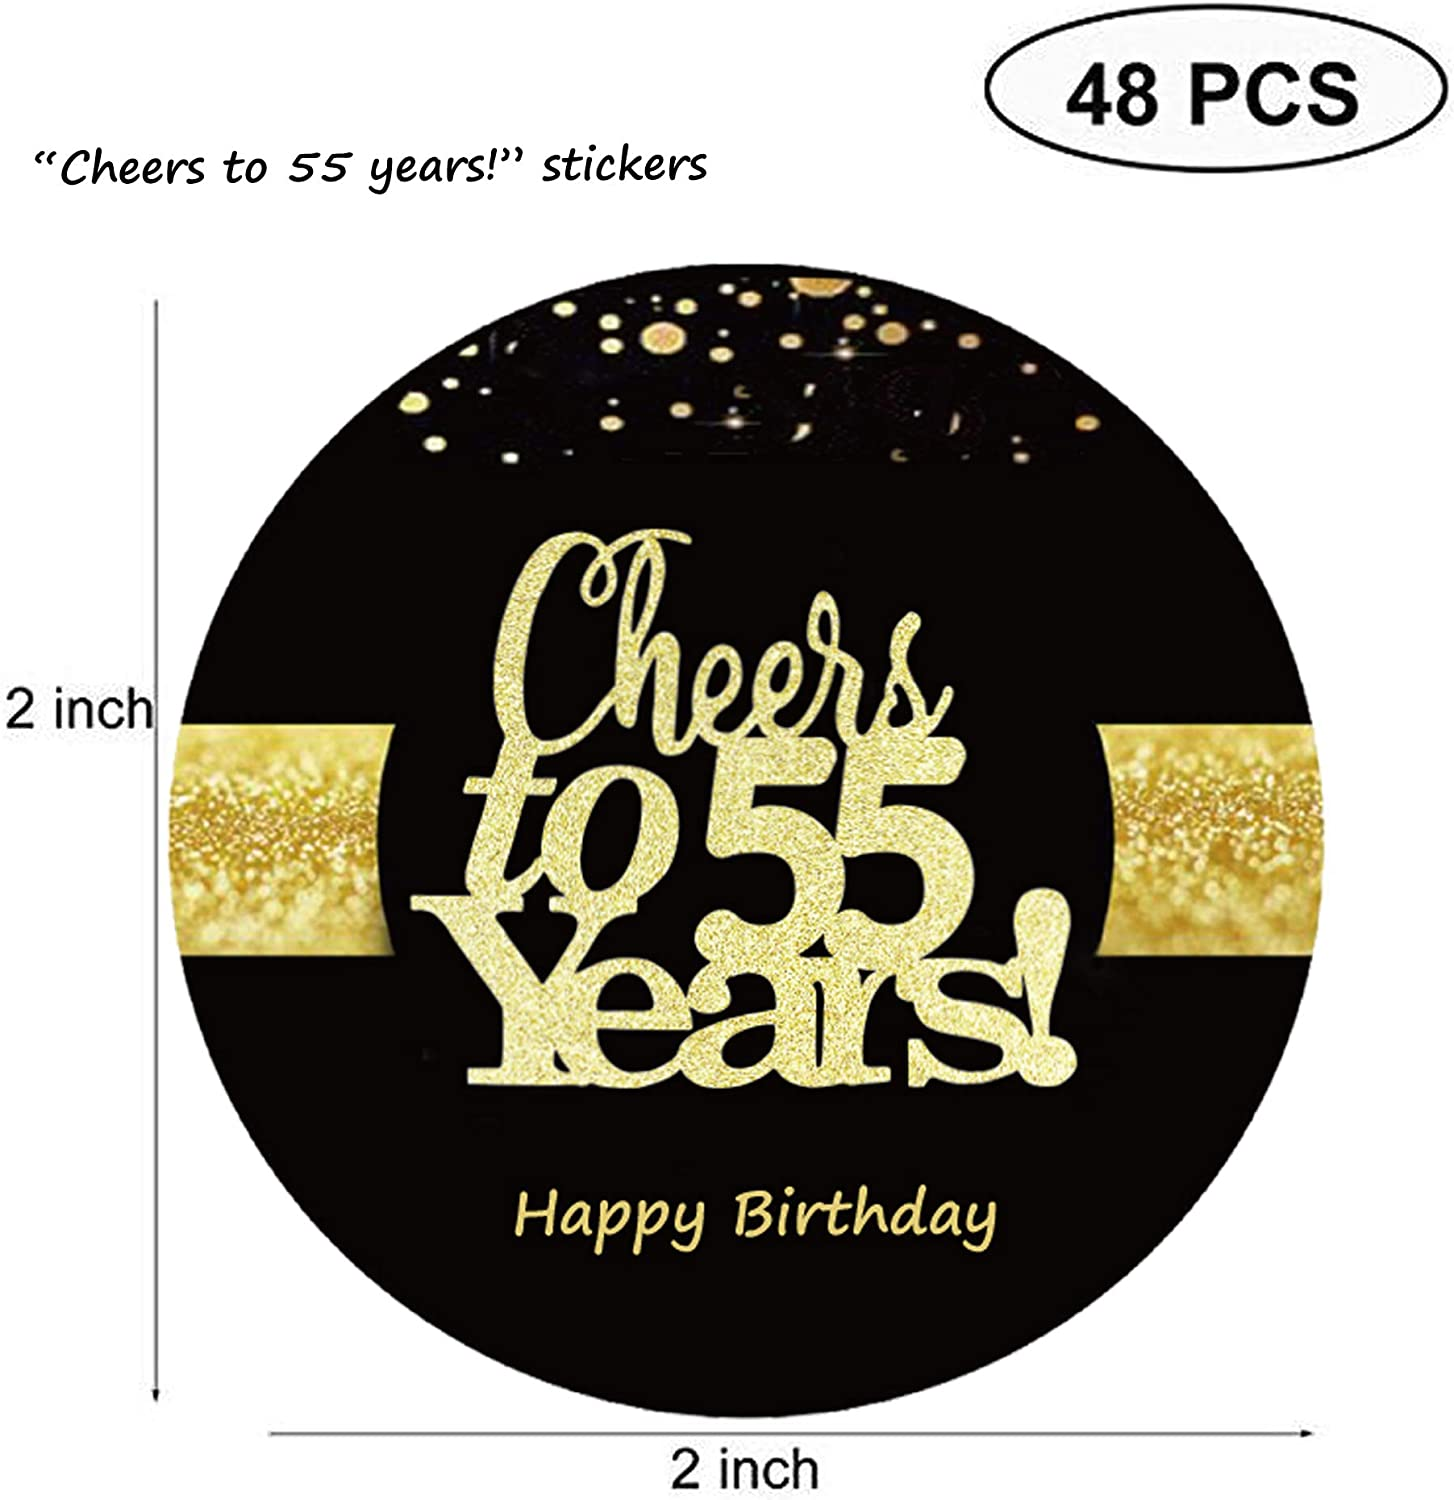 Sumerk 48 PCS Cheers to 55 Years Stickers Large Bottle Stickers 55th Birthday Stickers Card Seals 2 INCHES Round Happy Birthday Party Favors Stickers